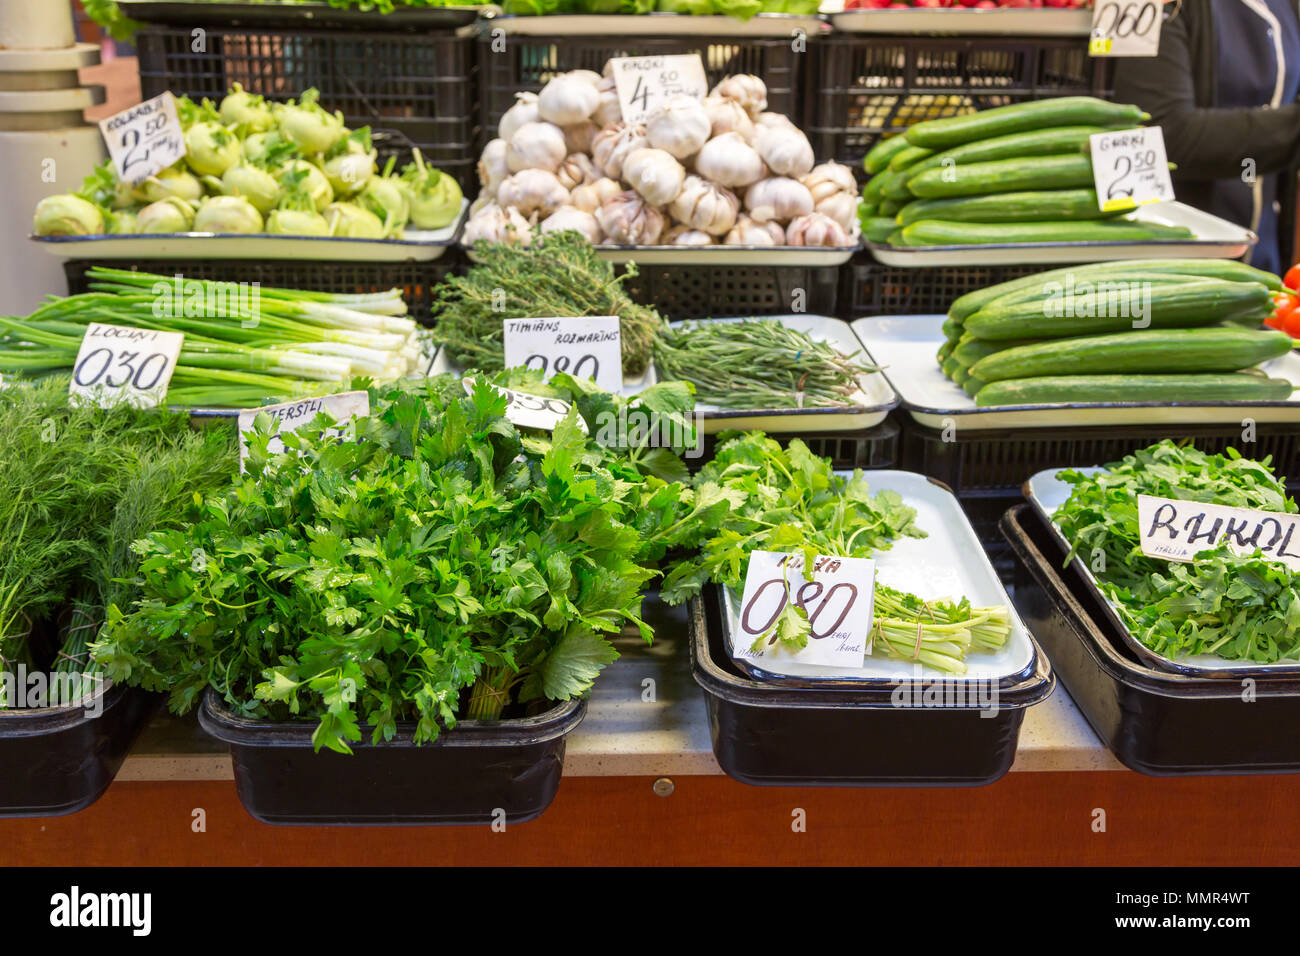 Vegetables stall in Riga central market, Latvia - Stock Image